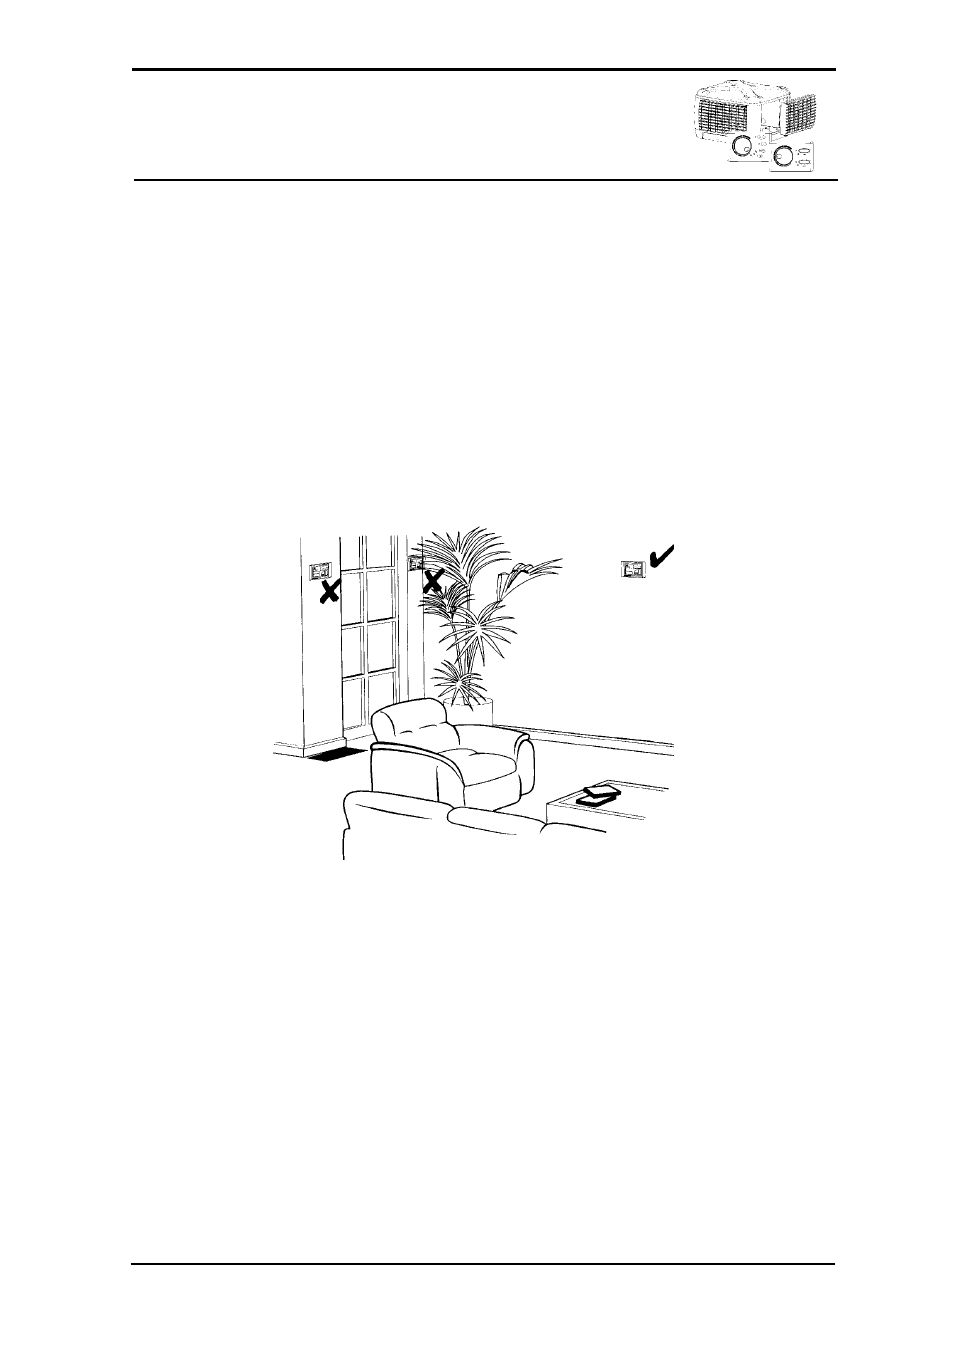 control location manual control installing the control bonaire control location manual control installing the control bonaire celair tekelek user manual page 14 28